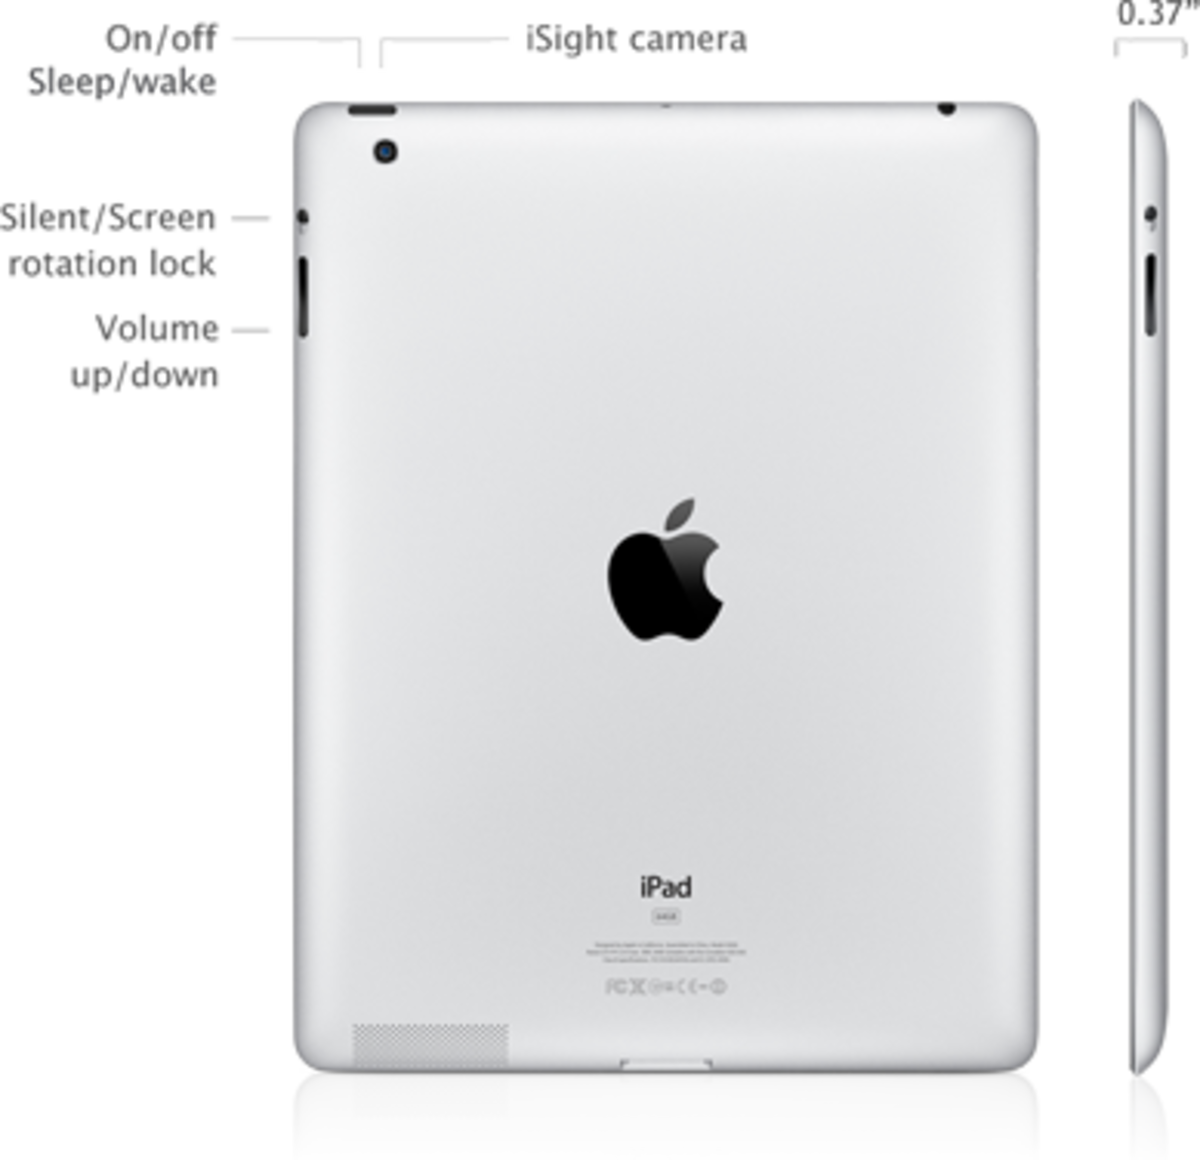 The iPad 3 has a model number that starts with either MC7 or MD3, and also features a larger space for the rear-facing camera.